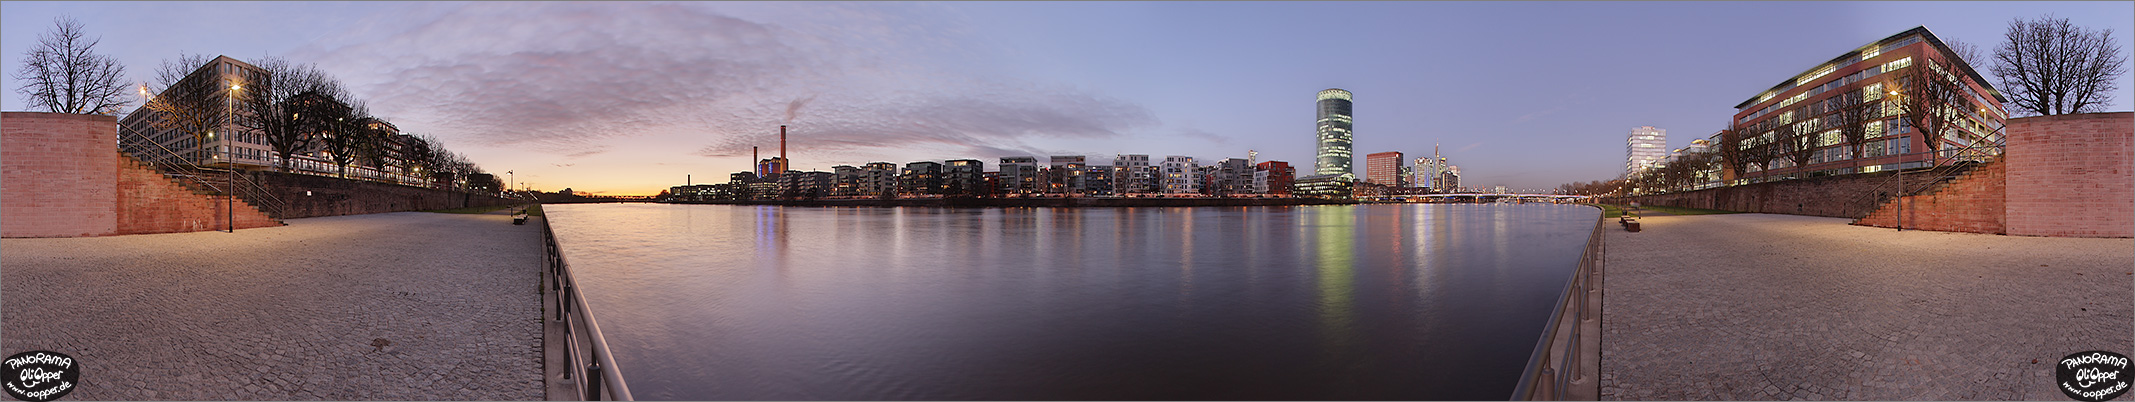 Panorama Bilder Frankfurt am Main - Sachsenh�user Mainufer - Westhafen / Westhafentower - p246 - (c) by Oliver Opper